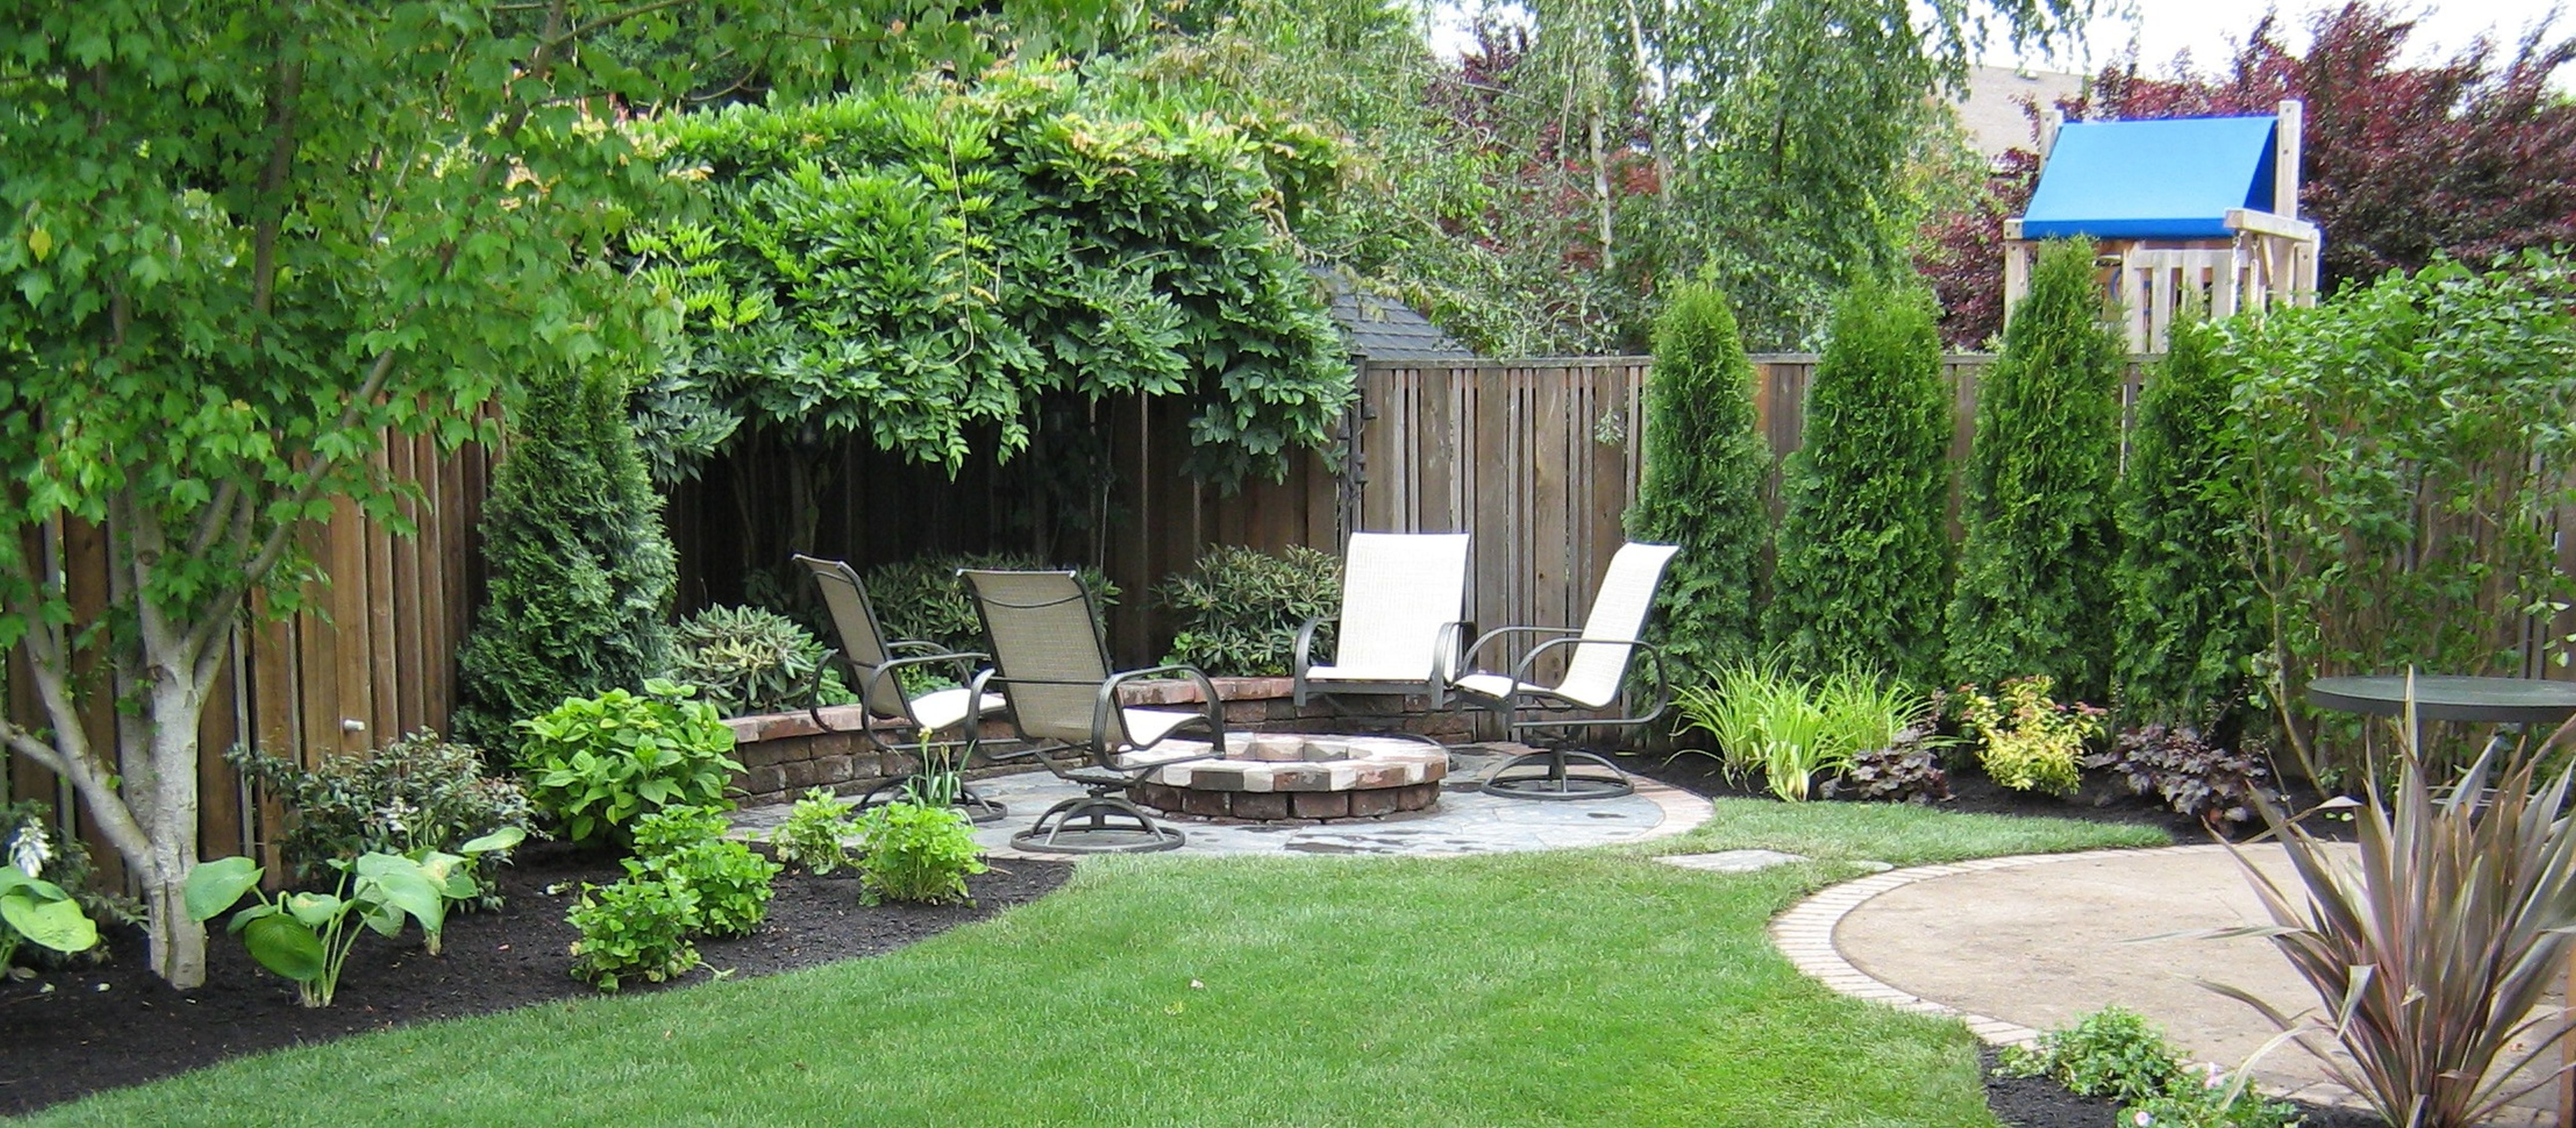 Amazing Ideas For Small Backyard Landscaping Great in Landscape Small Backyard